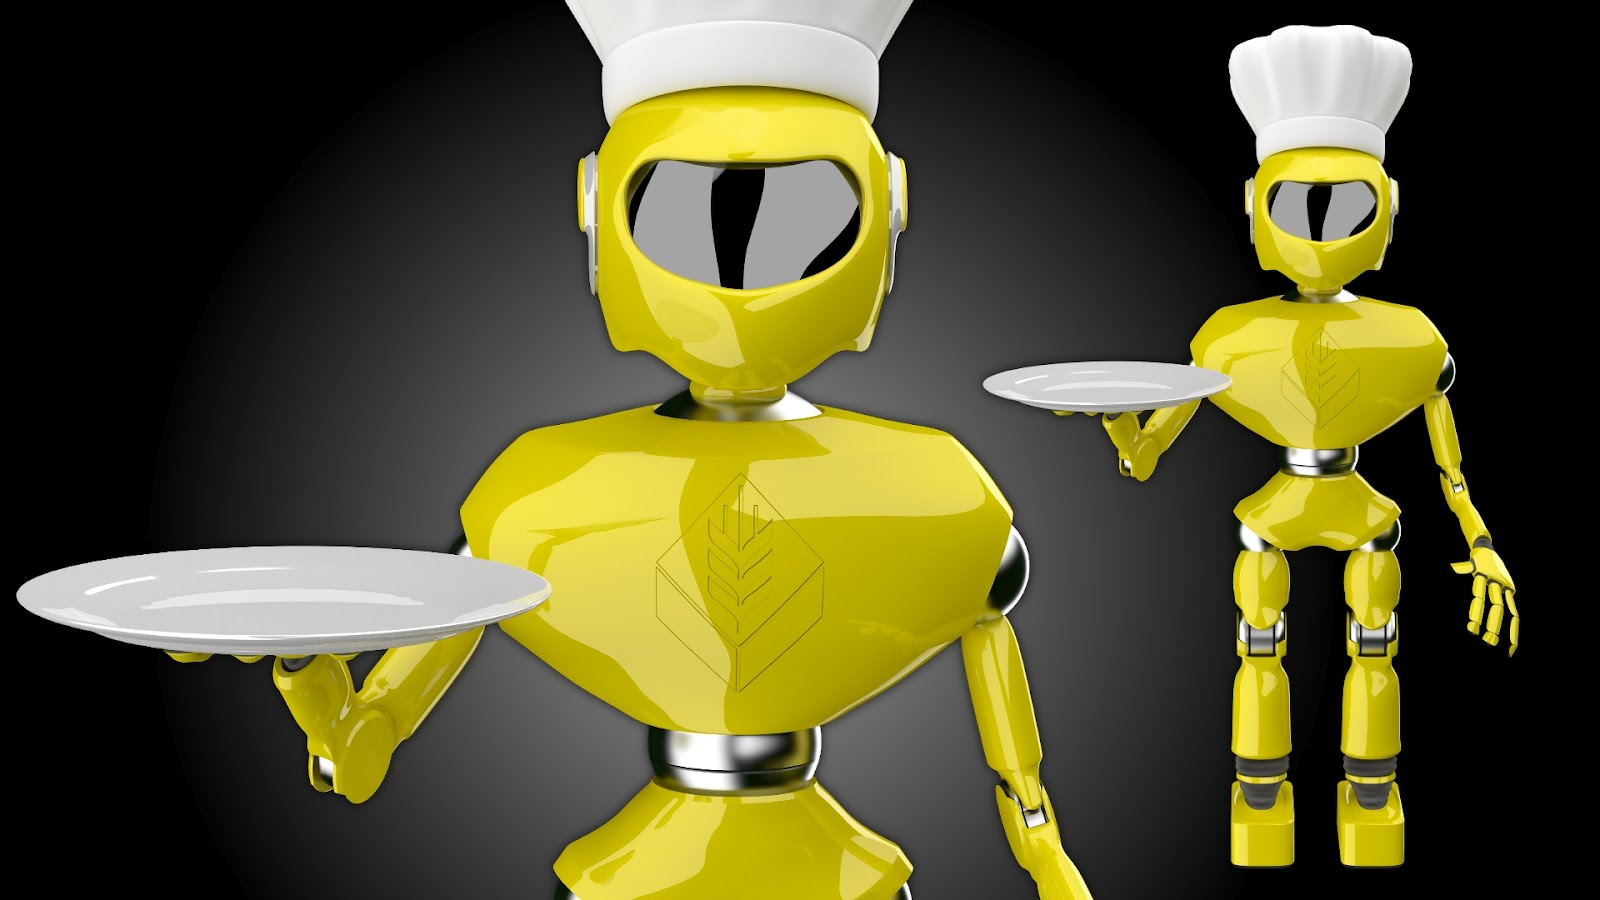 Pin robot chef facebook covers myfbcovers on pinterest - Superchef cook mix ...